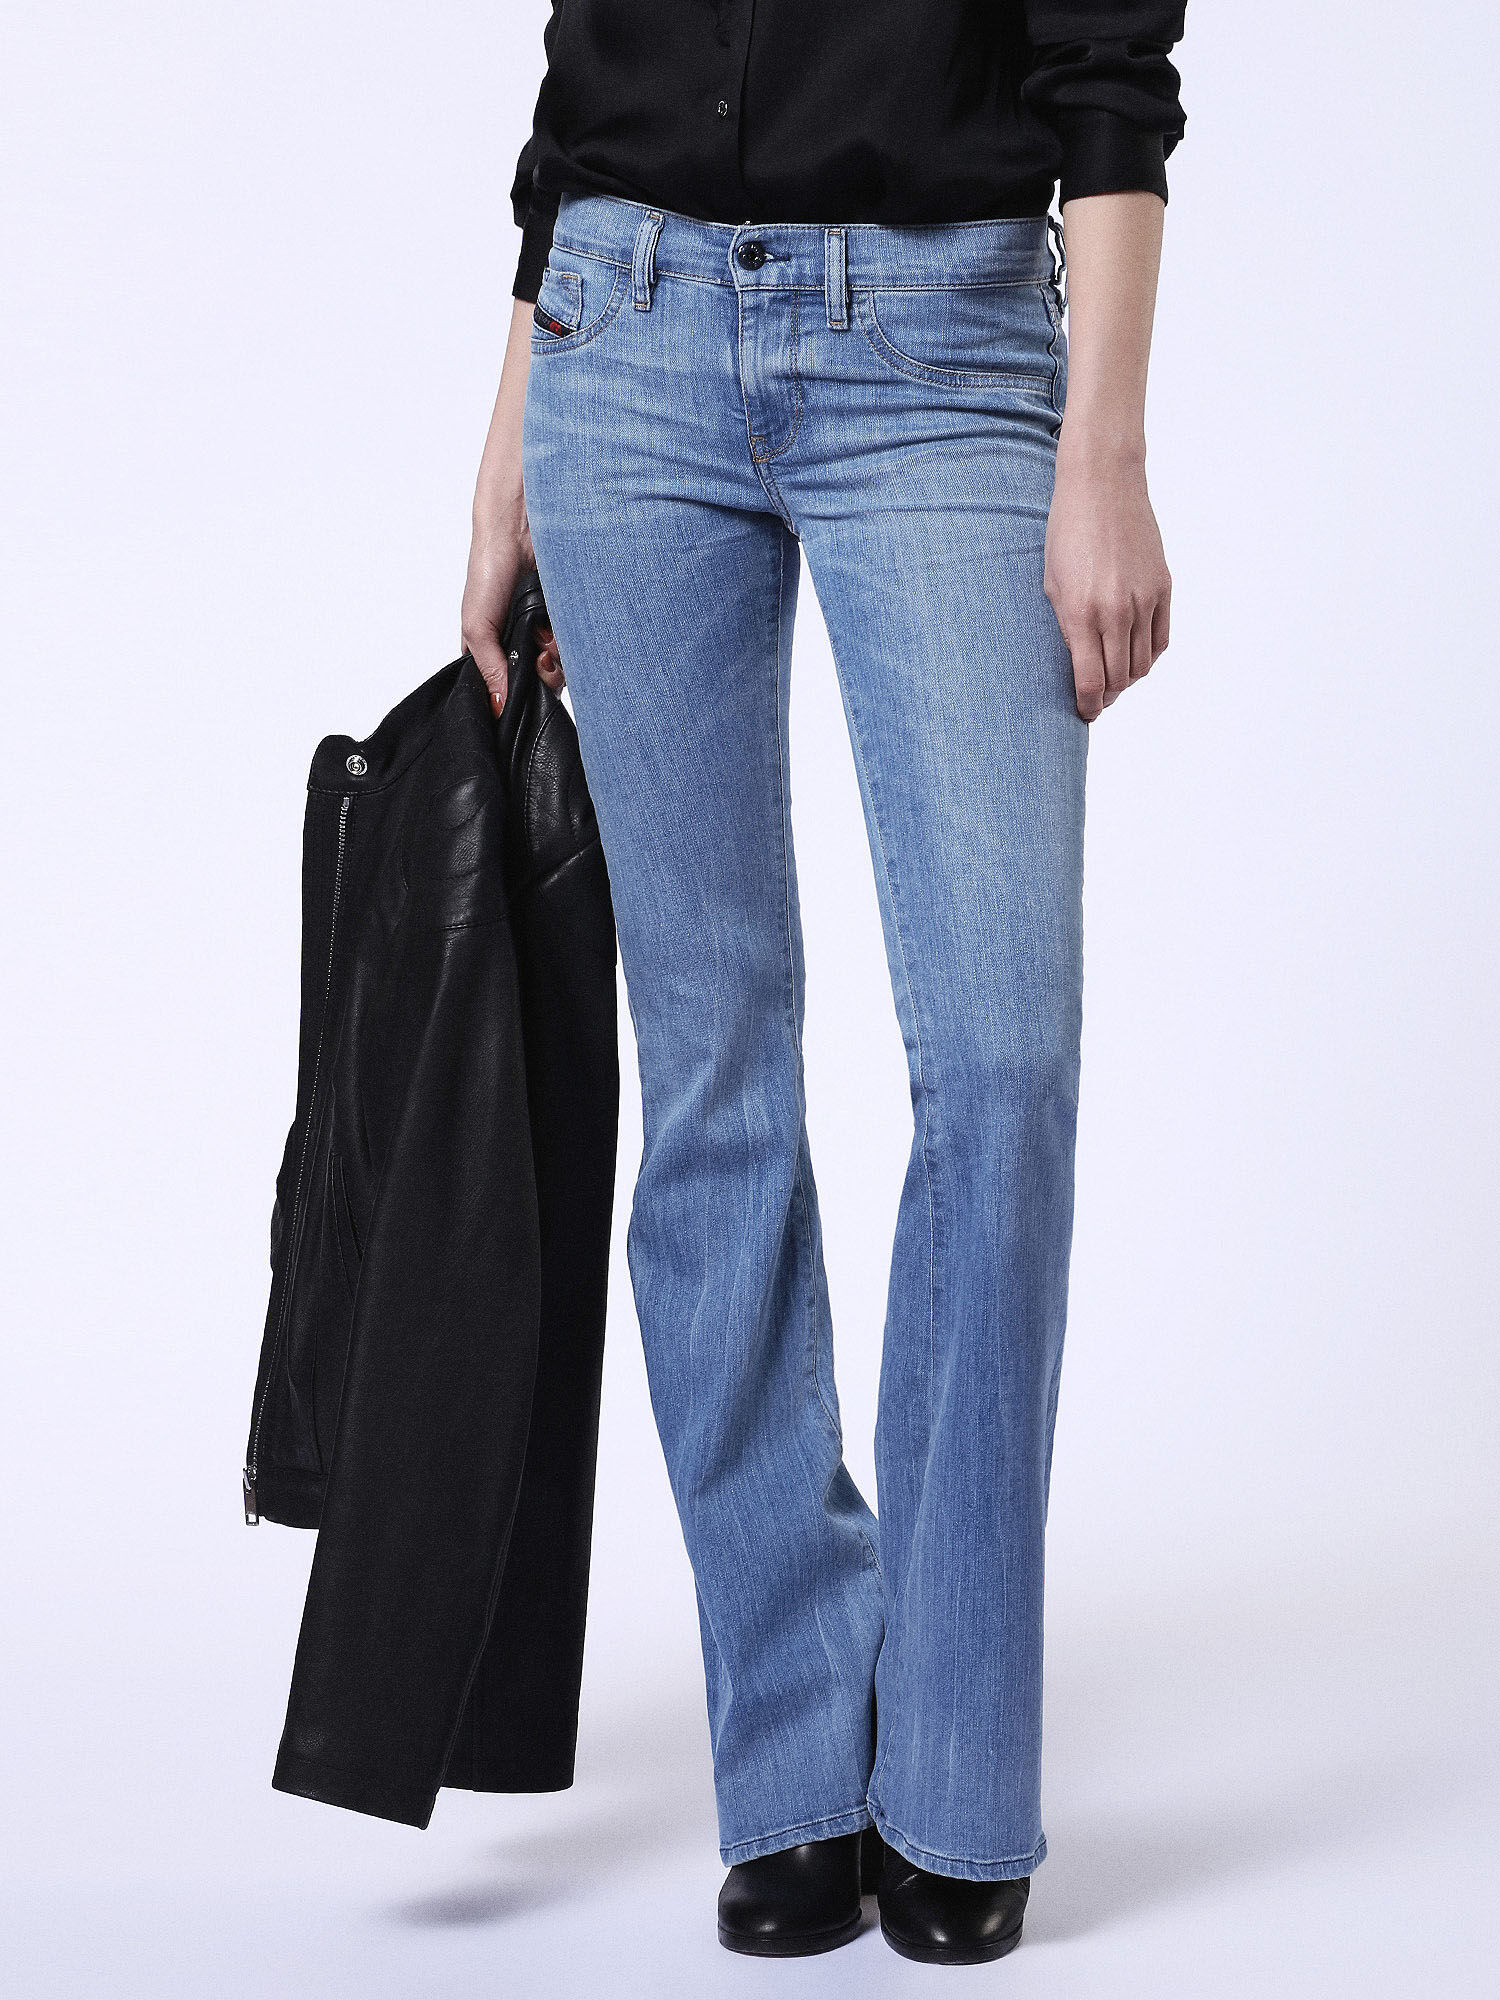 Livier flare jeans bootcut 06081